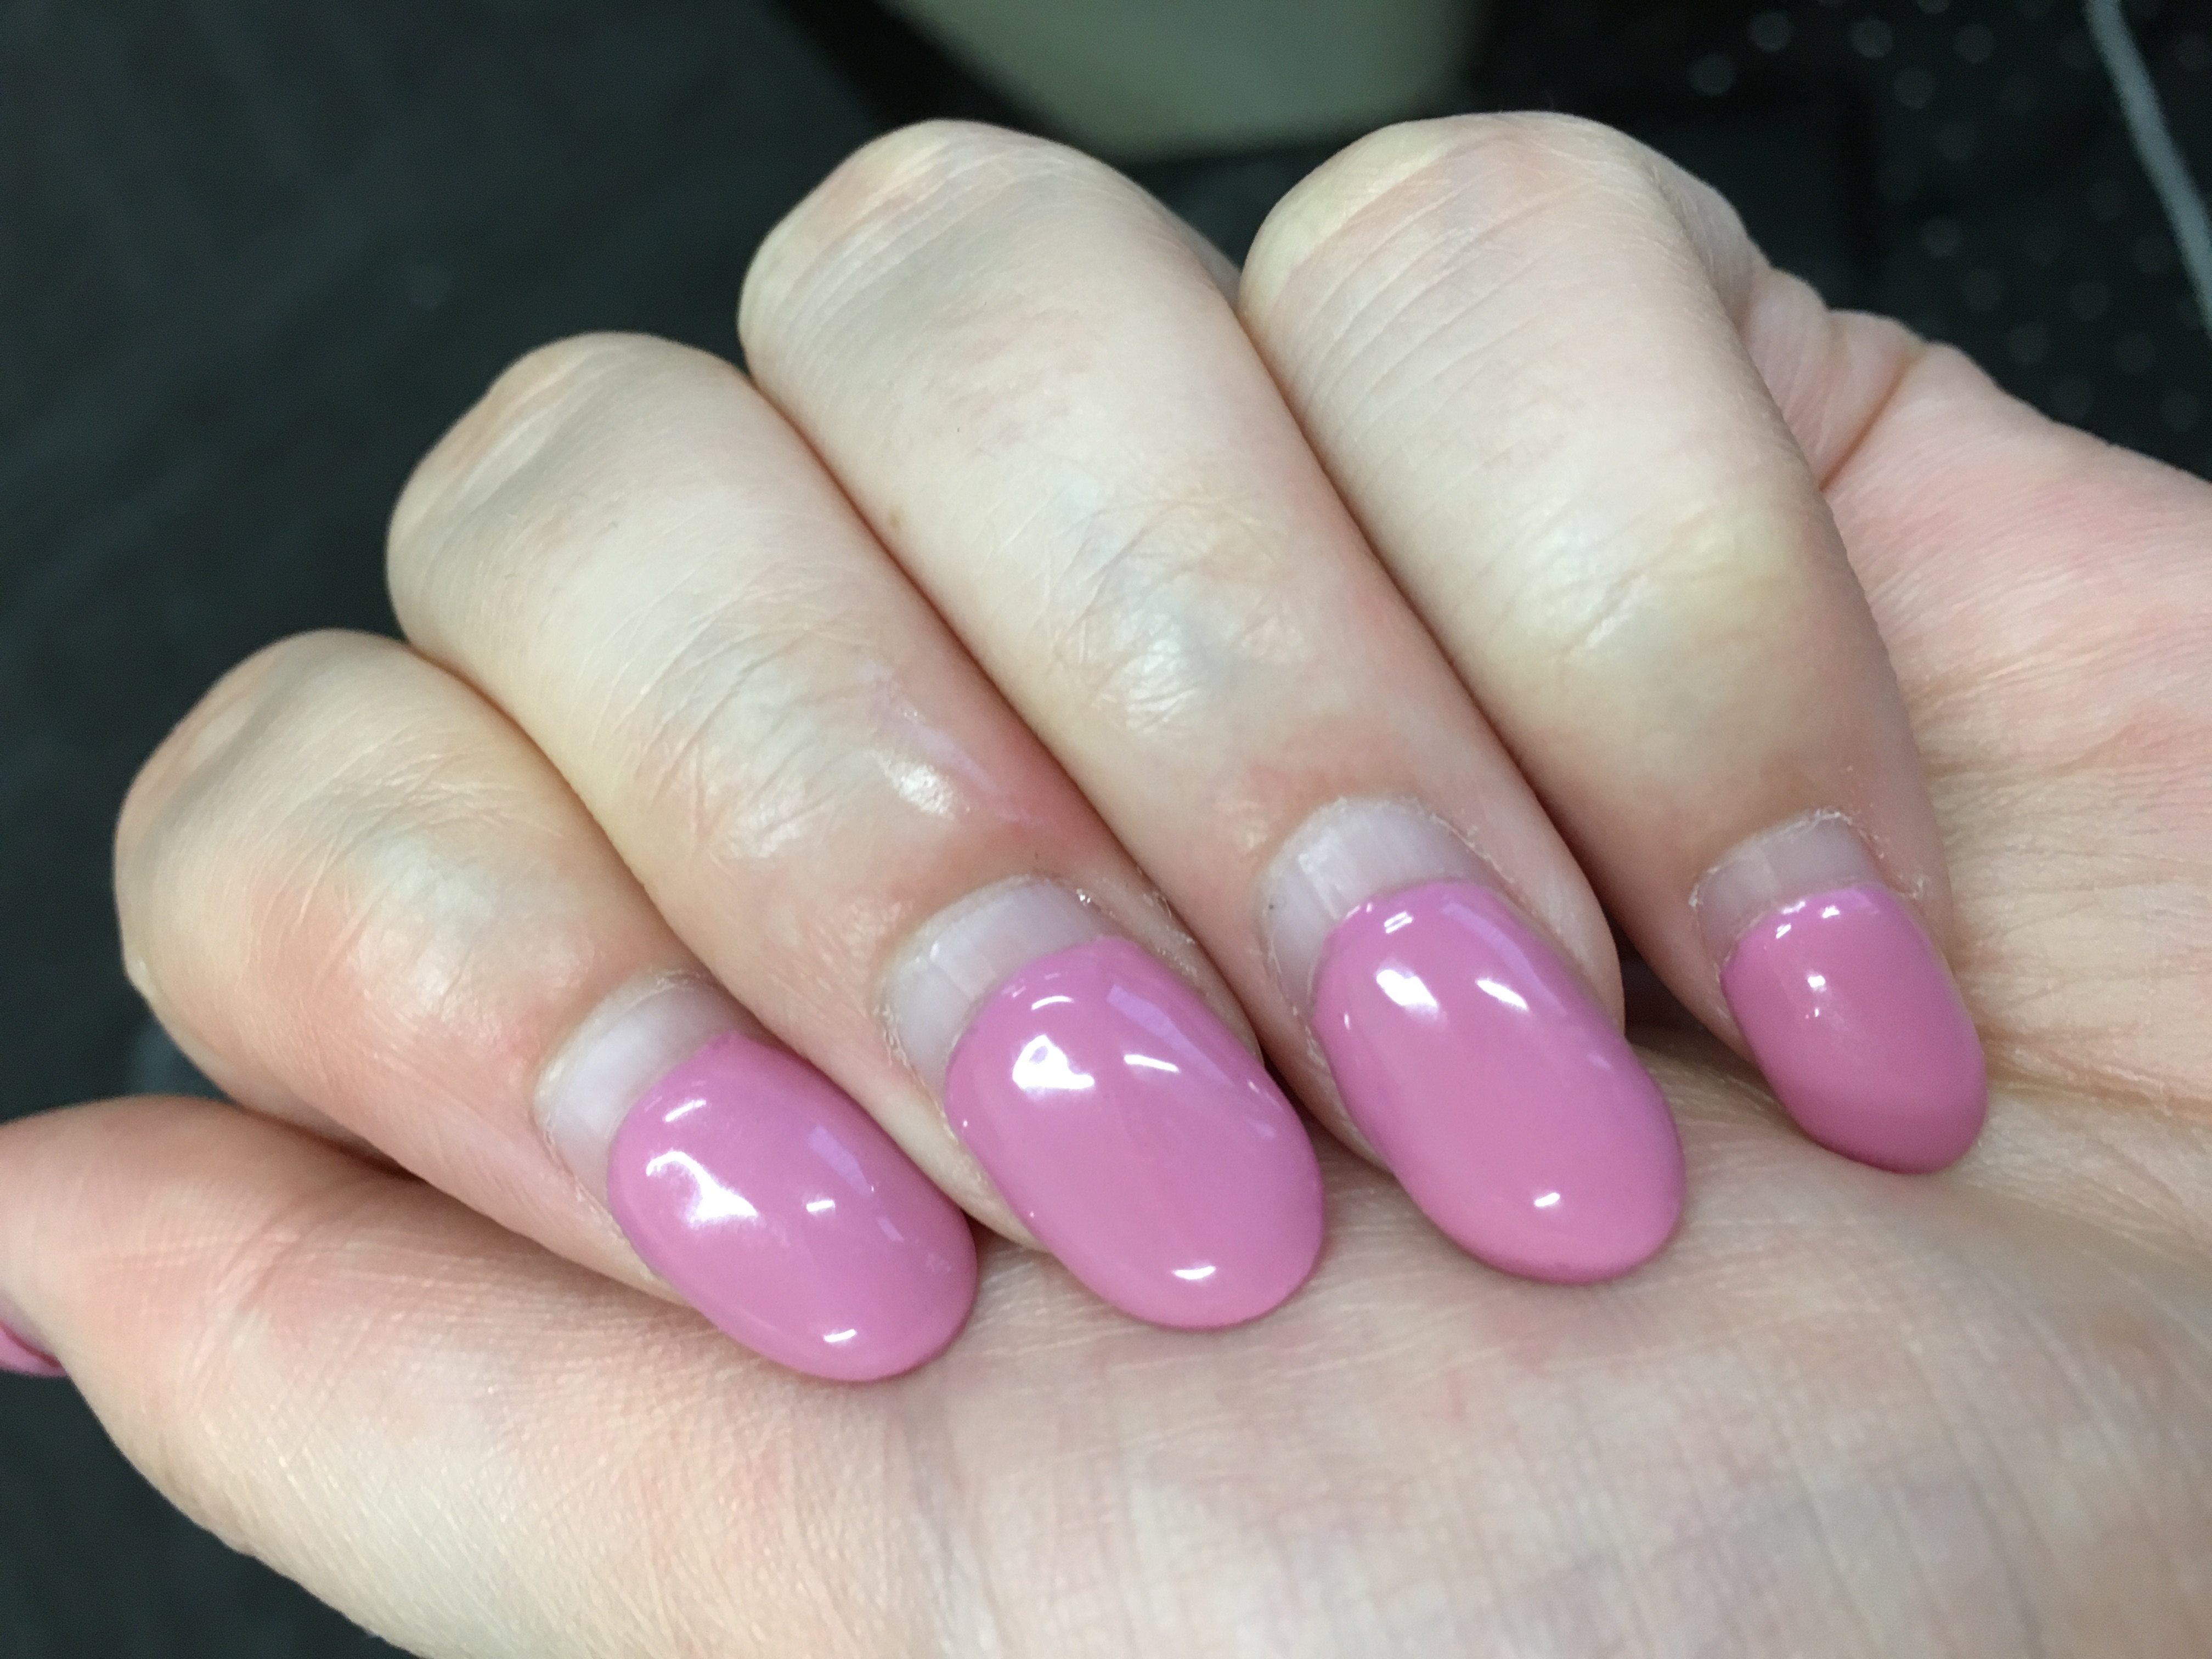 Average cost of acrylic nails - Expression Nails